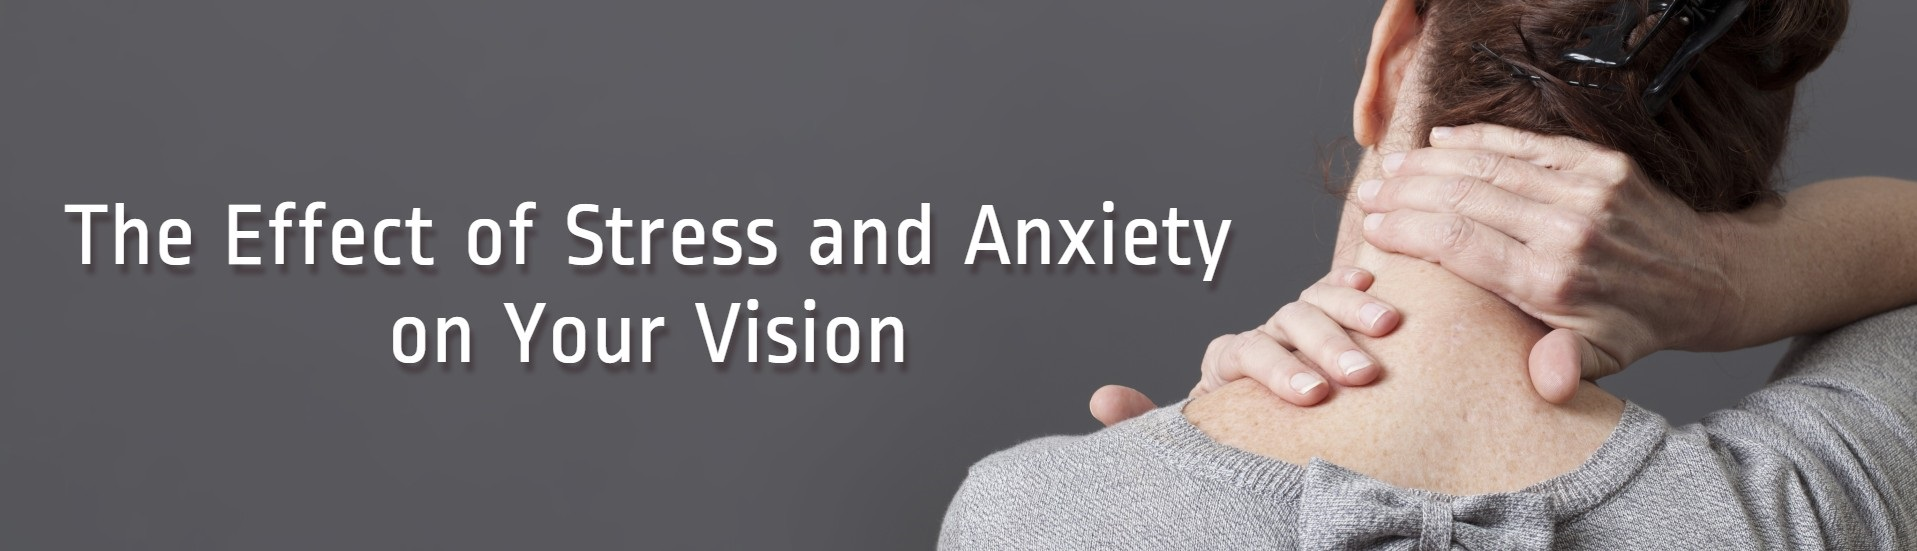 Effect of Stress and Anxiety